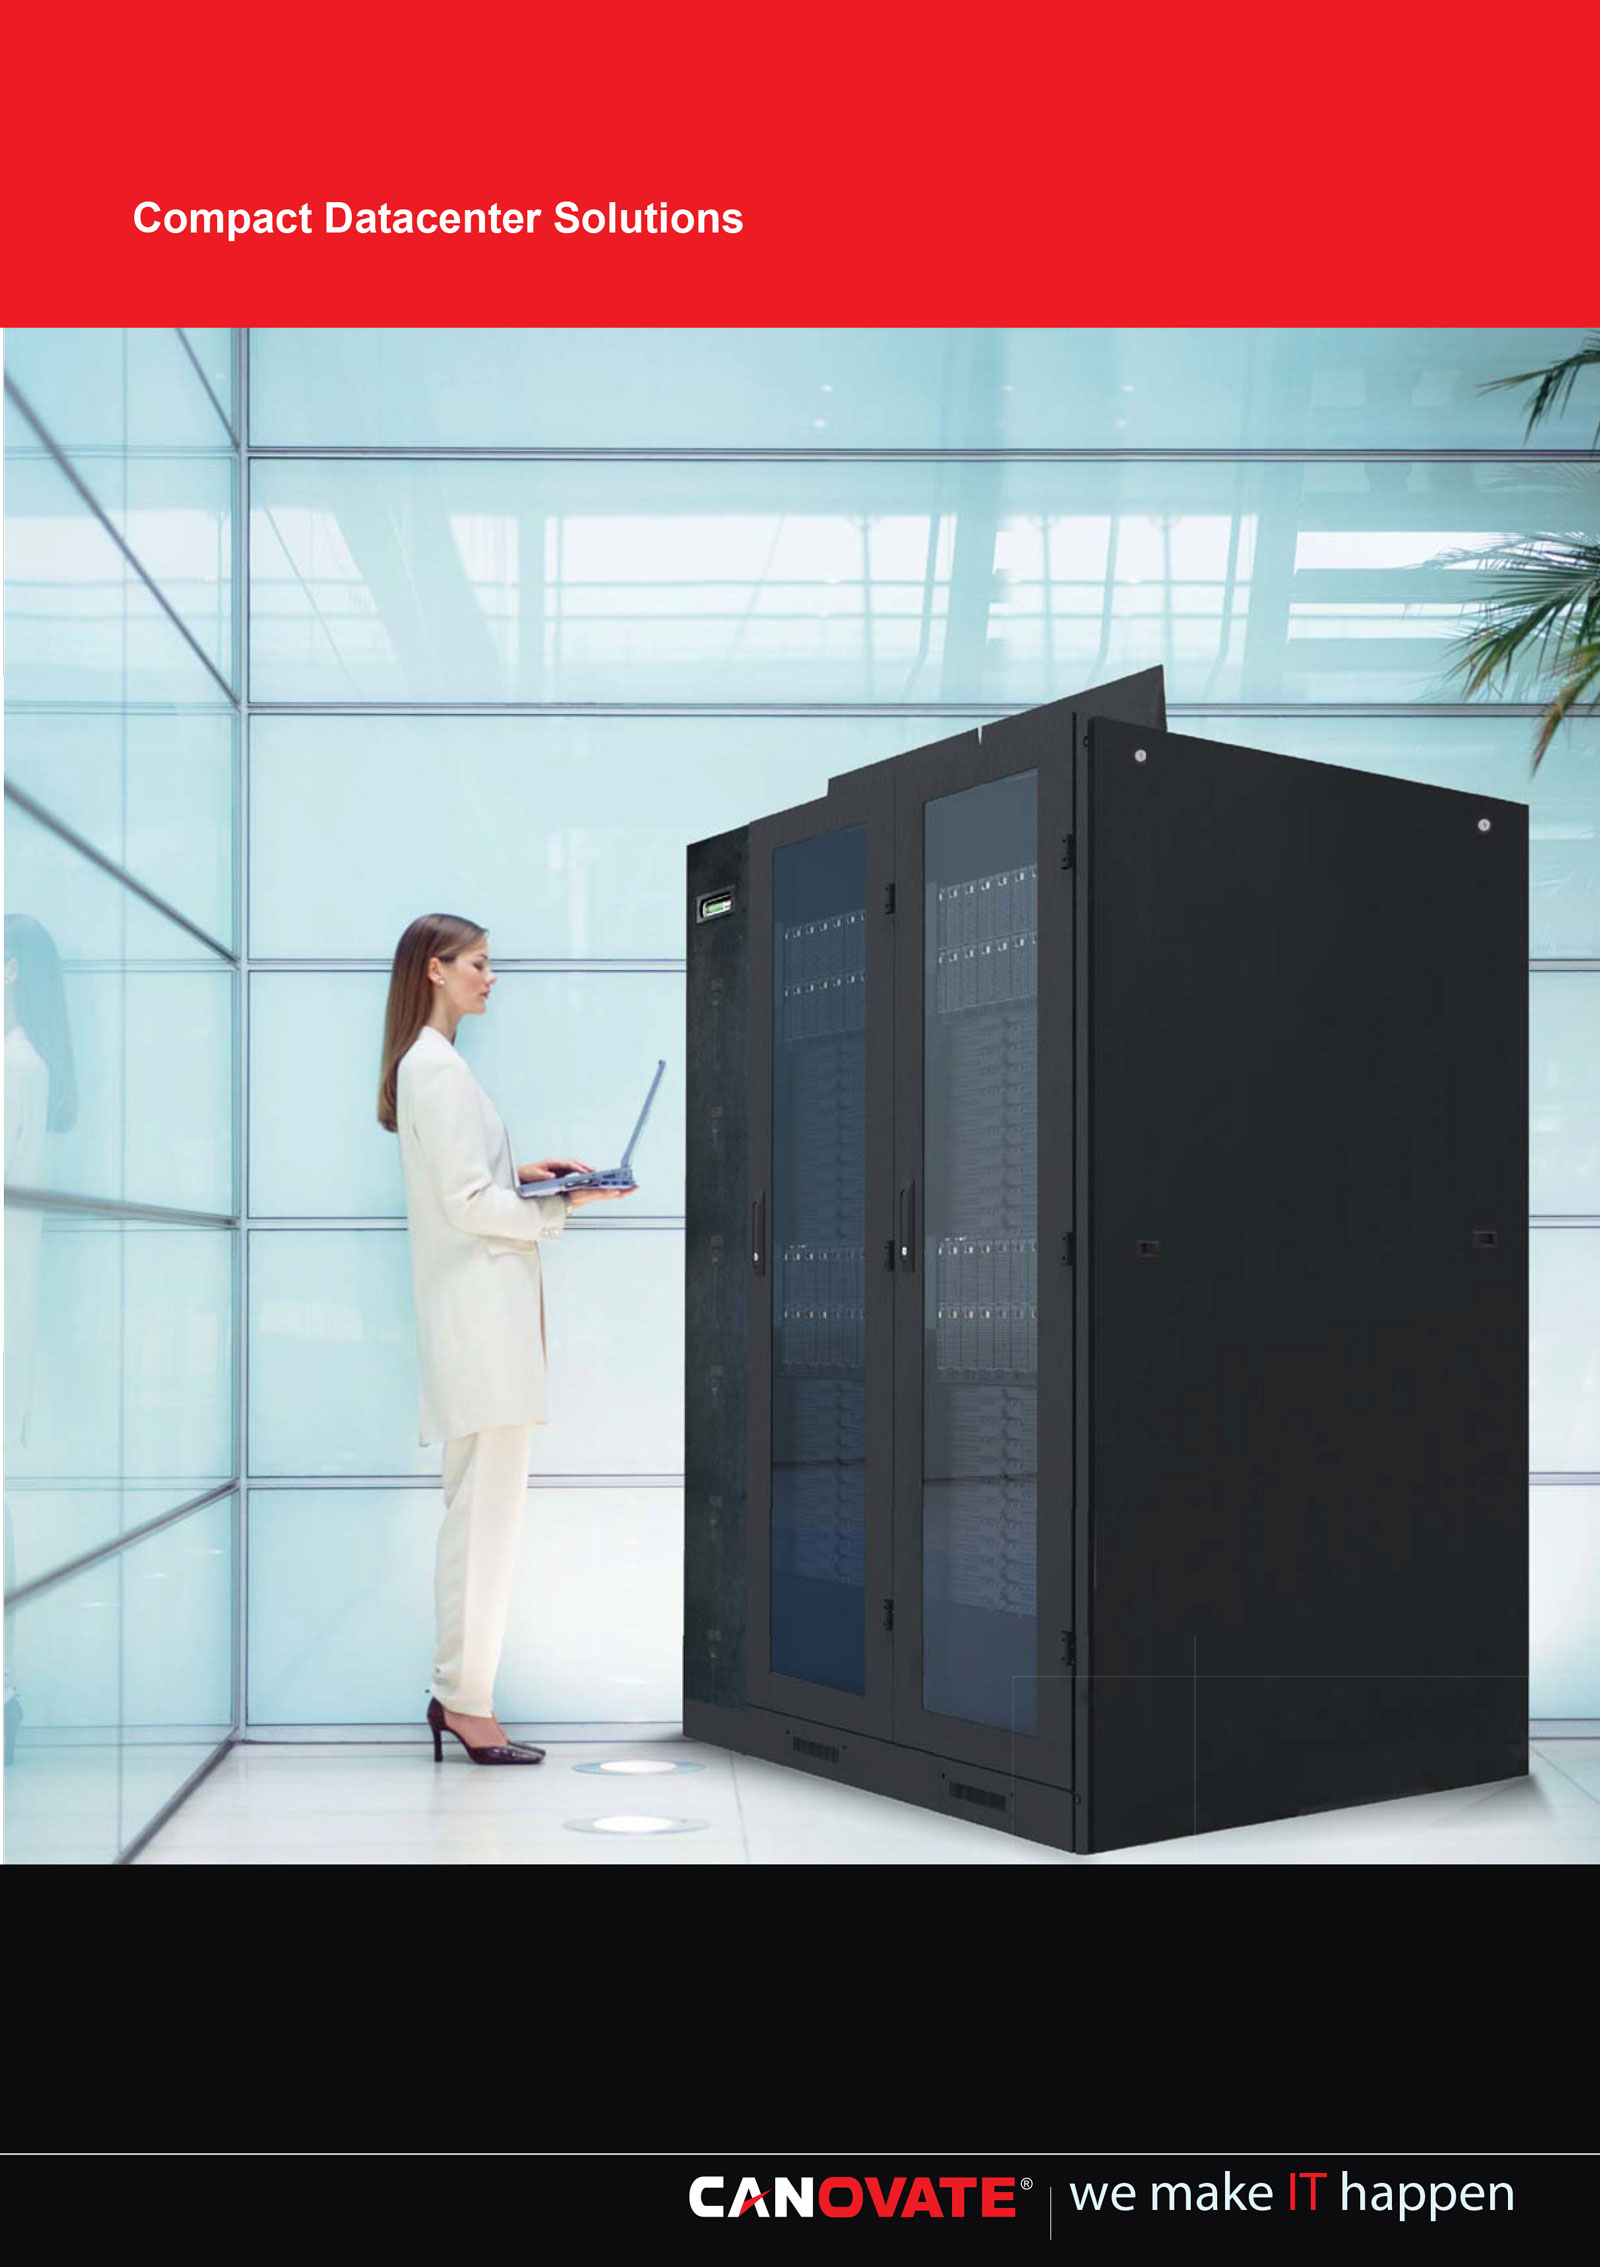 Canovate-Datacenter-Project